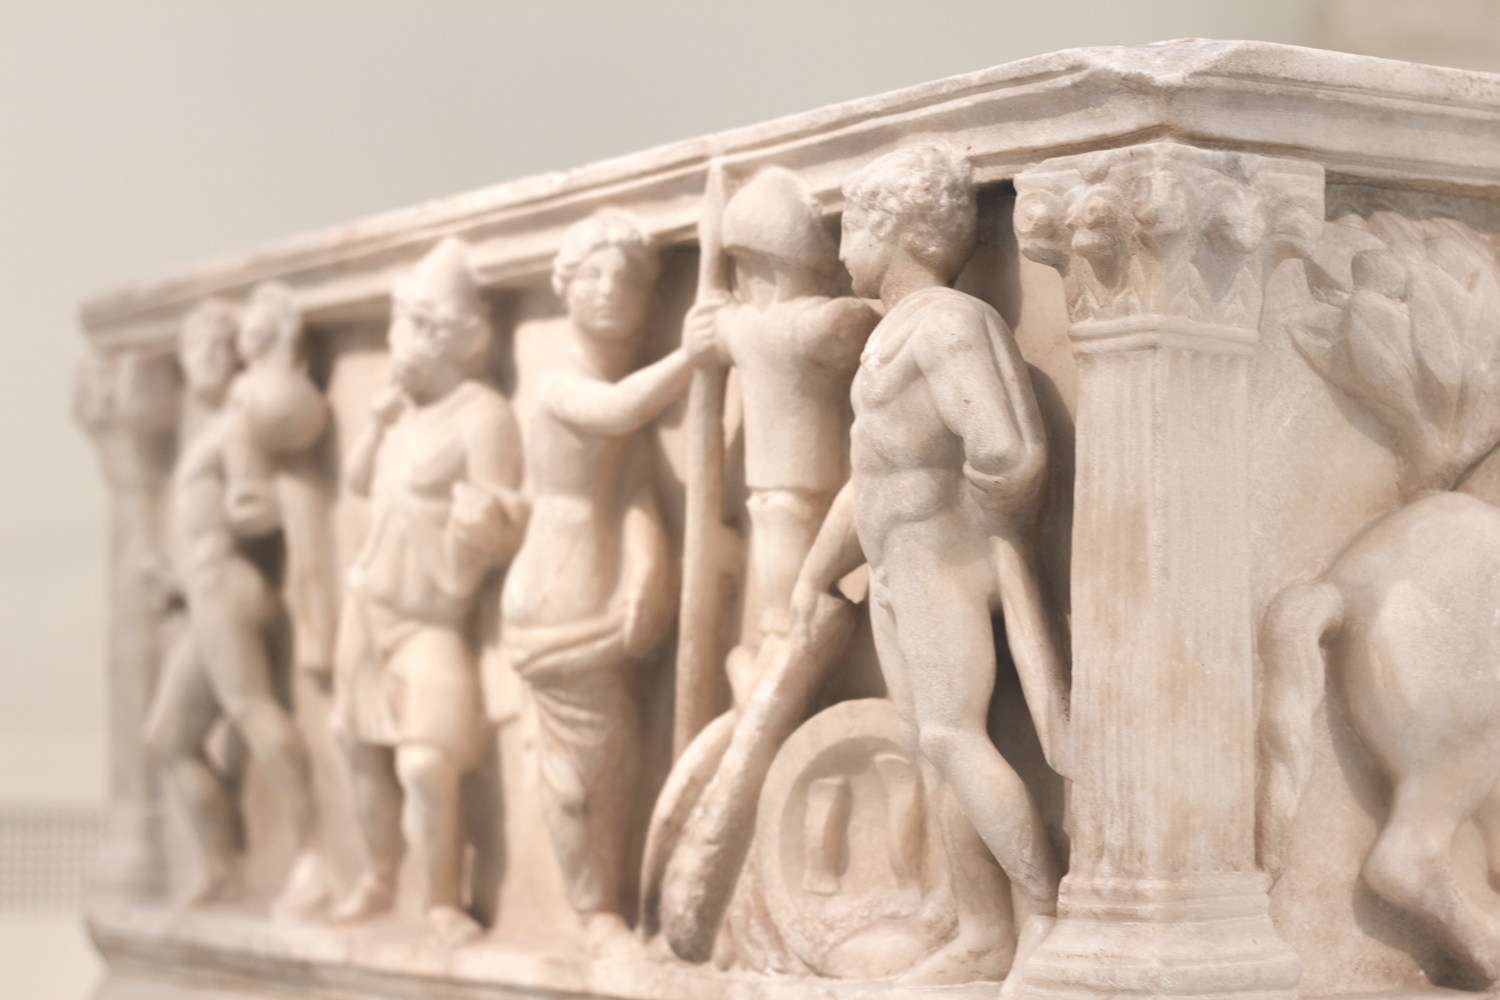 At the national archaeology museum in Athens